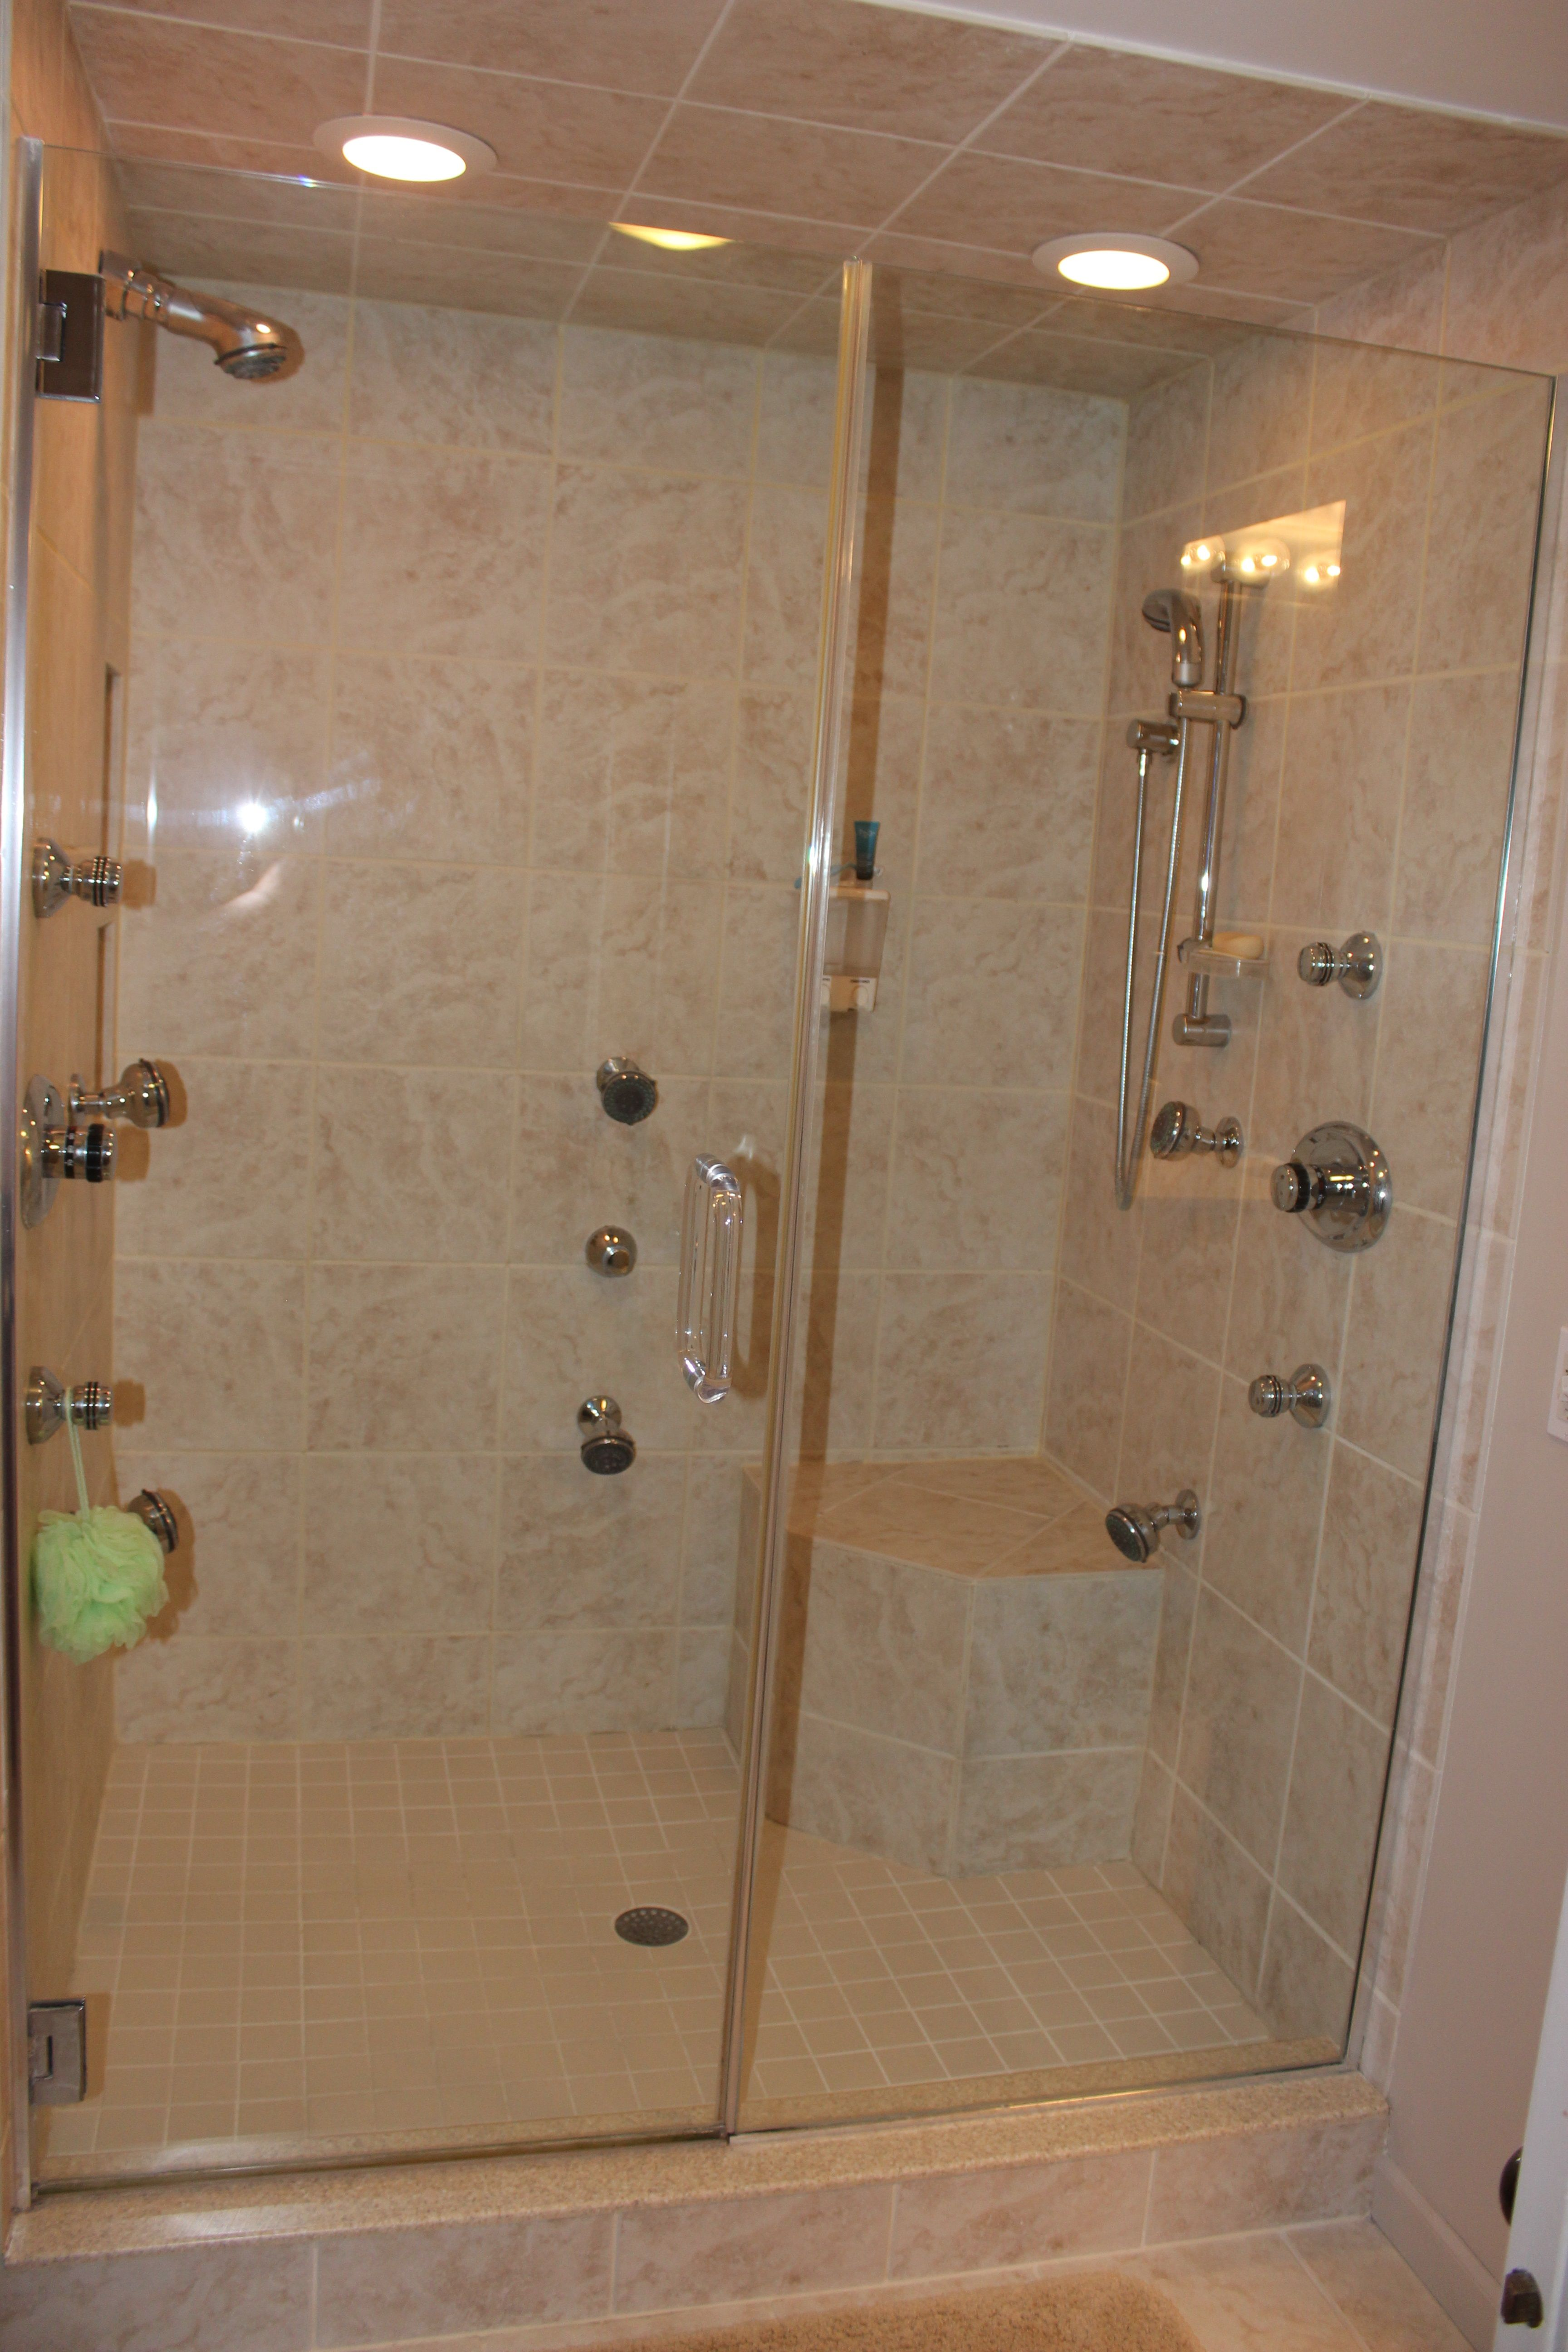 Top Cleaning Hacks Sparkling Clean Shower Doors And Hard Water Stains